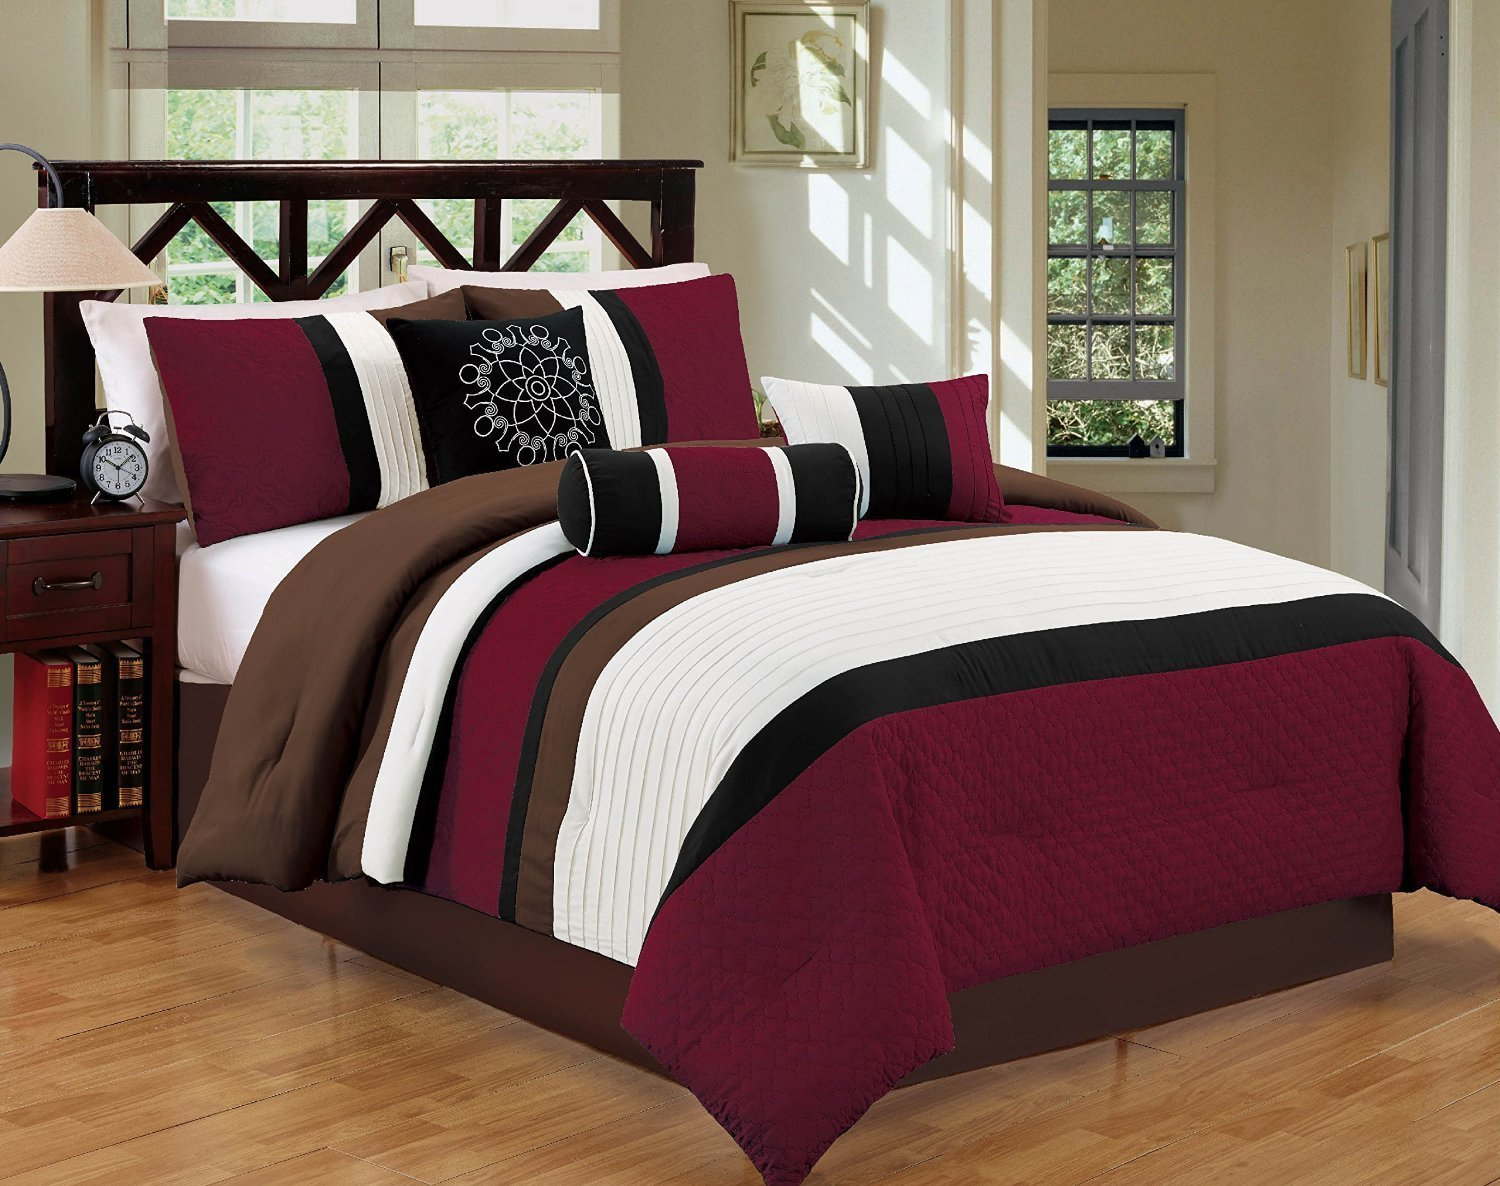 twin soft xl navy set burgundy comforter everyday and truly p bedding reversible maroon sets